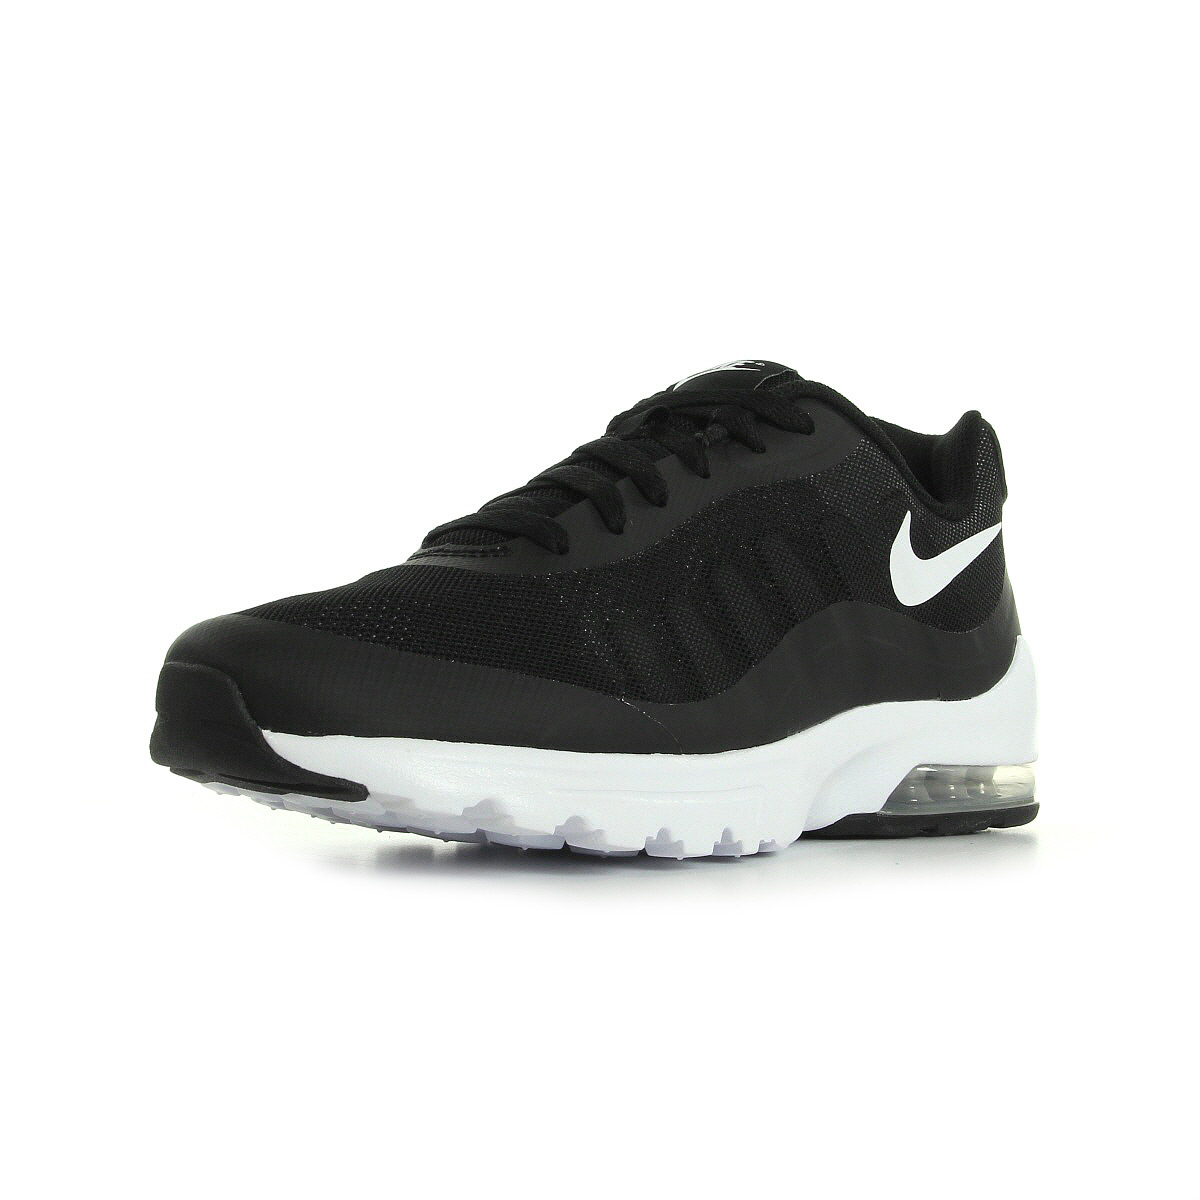 CHAUSSURES BASKETS NIKE homme Air Max Invigor taille Noir Noire Synthétique